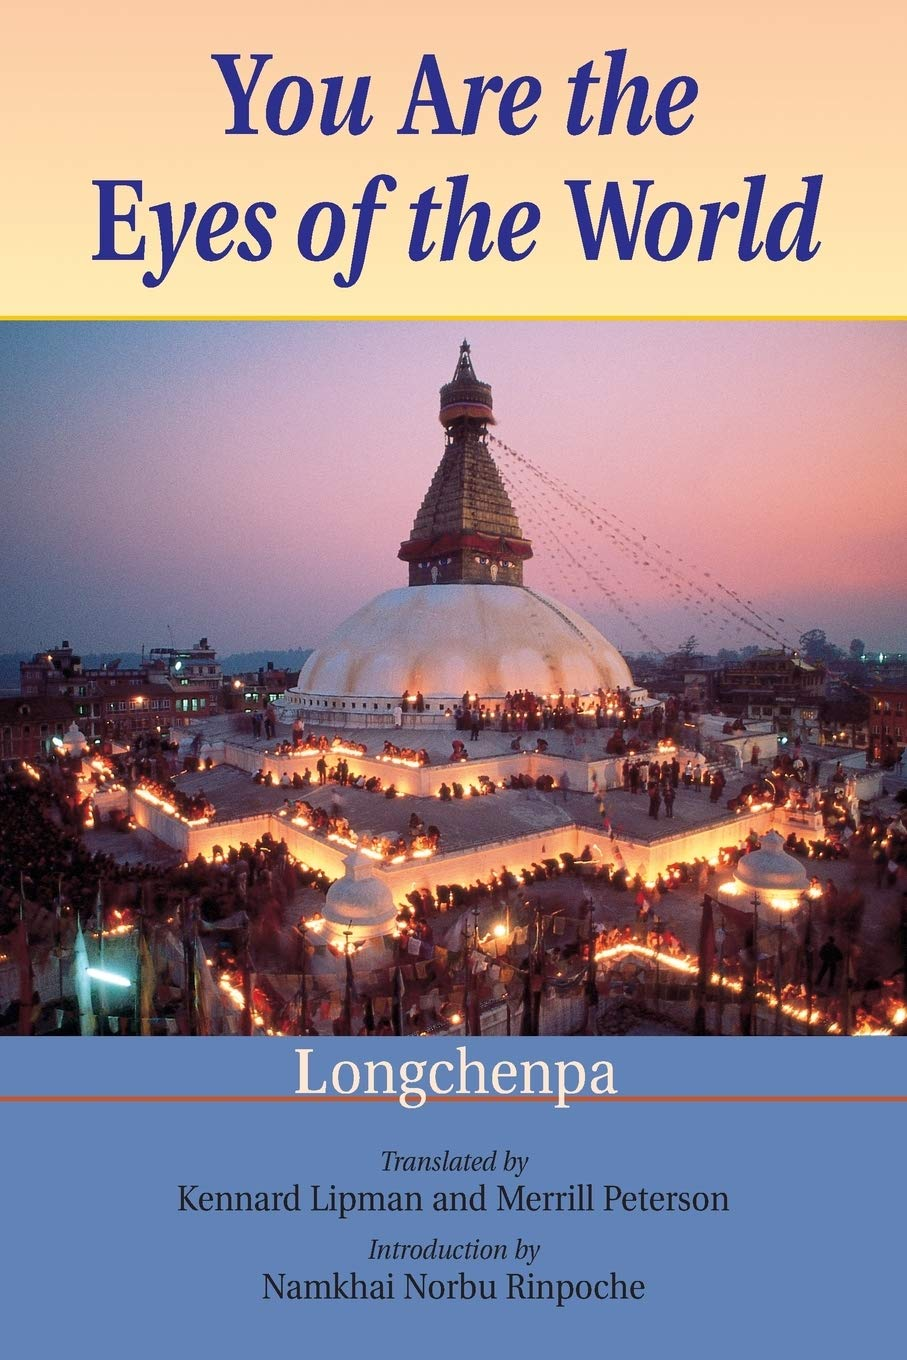 4 The Jewel Ship, from You Are the Eyes of the World, by Longchenpa